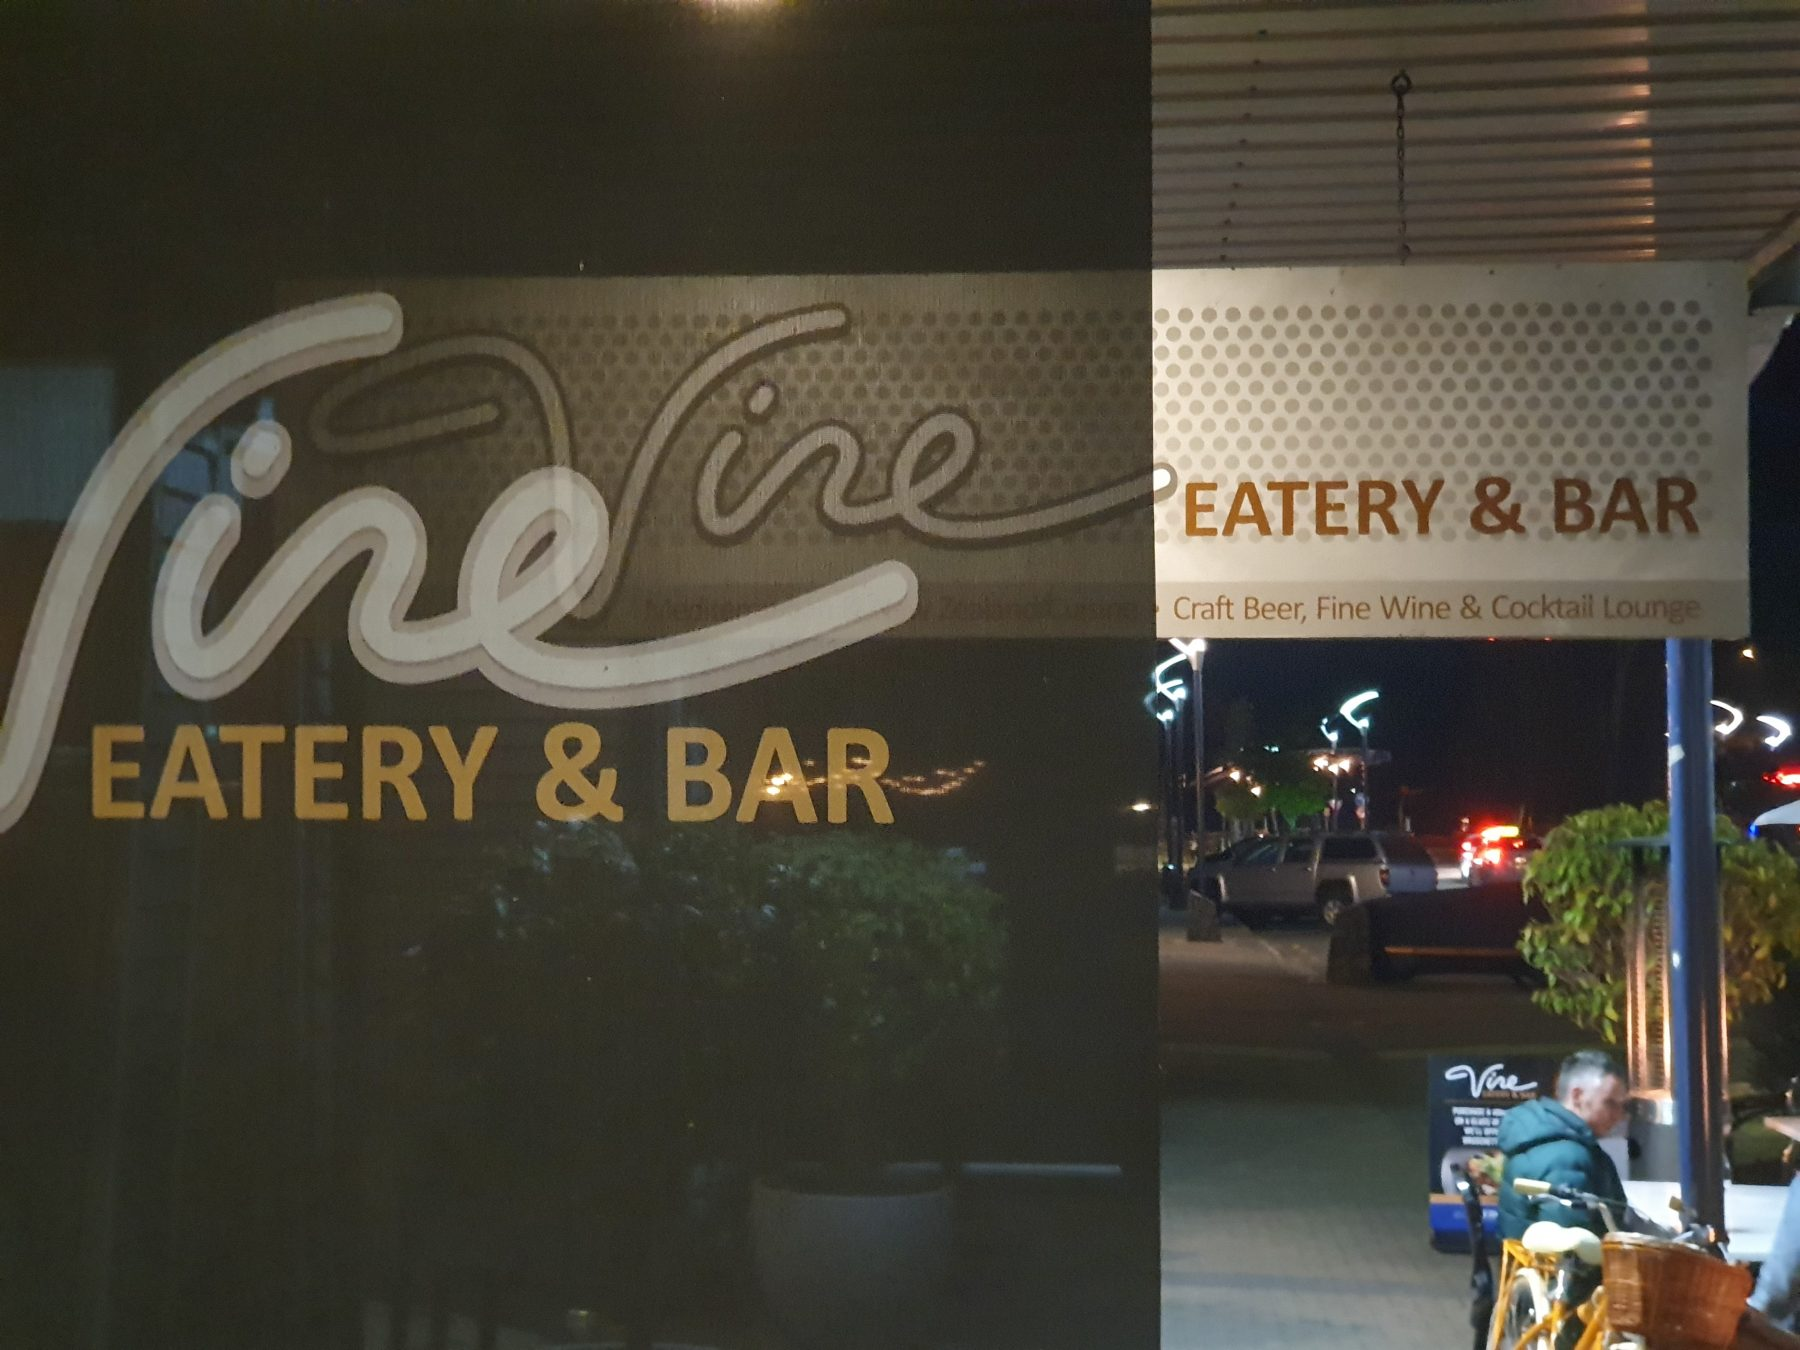 The Vine eatery and bar Taupo sign